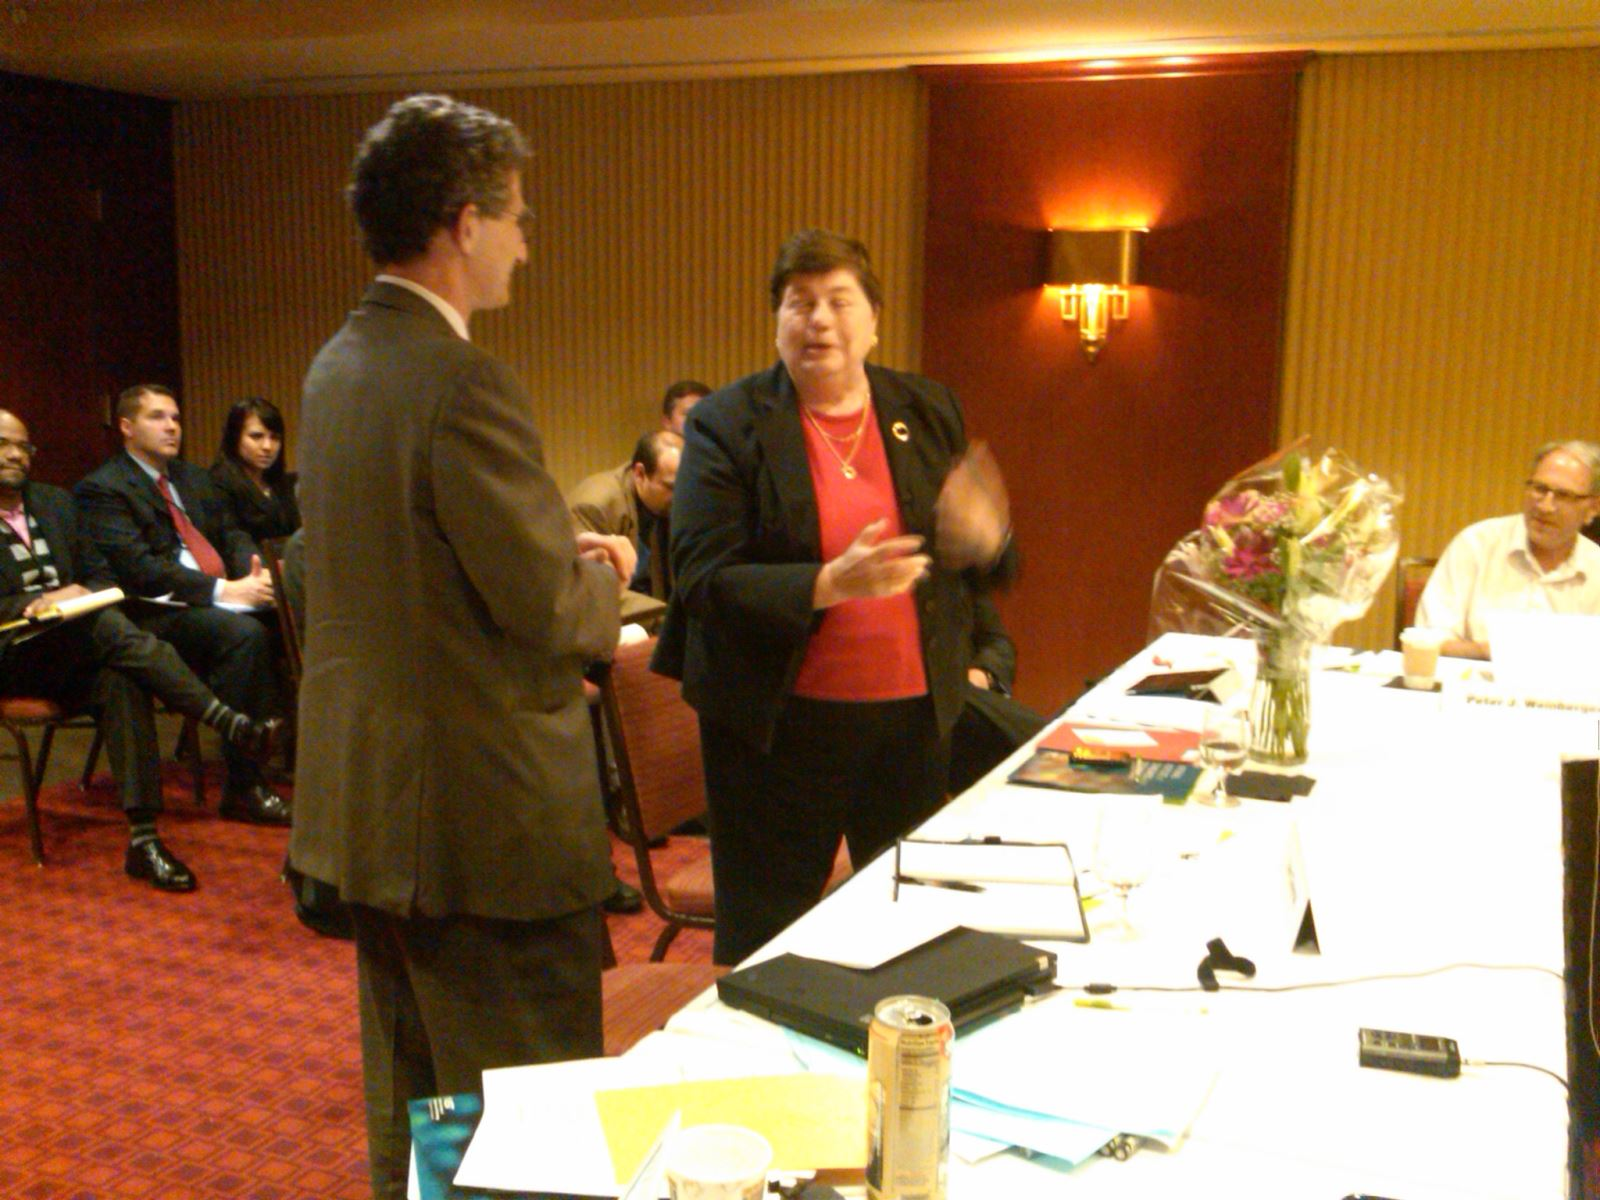 Dan Chenok (Chair, ISPAB) presents a bouquet to Cita Furlani (ITL Director, NIST) for her contribution and leadership.